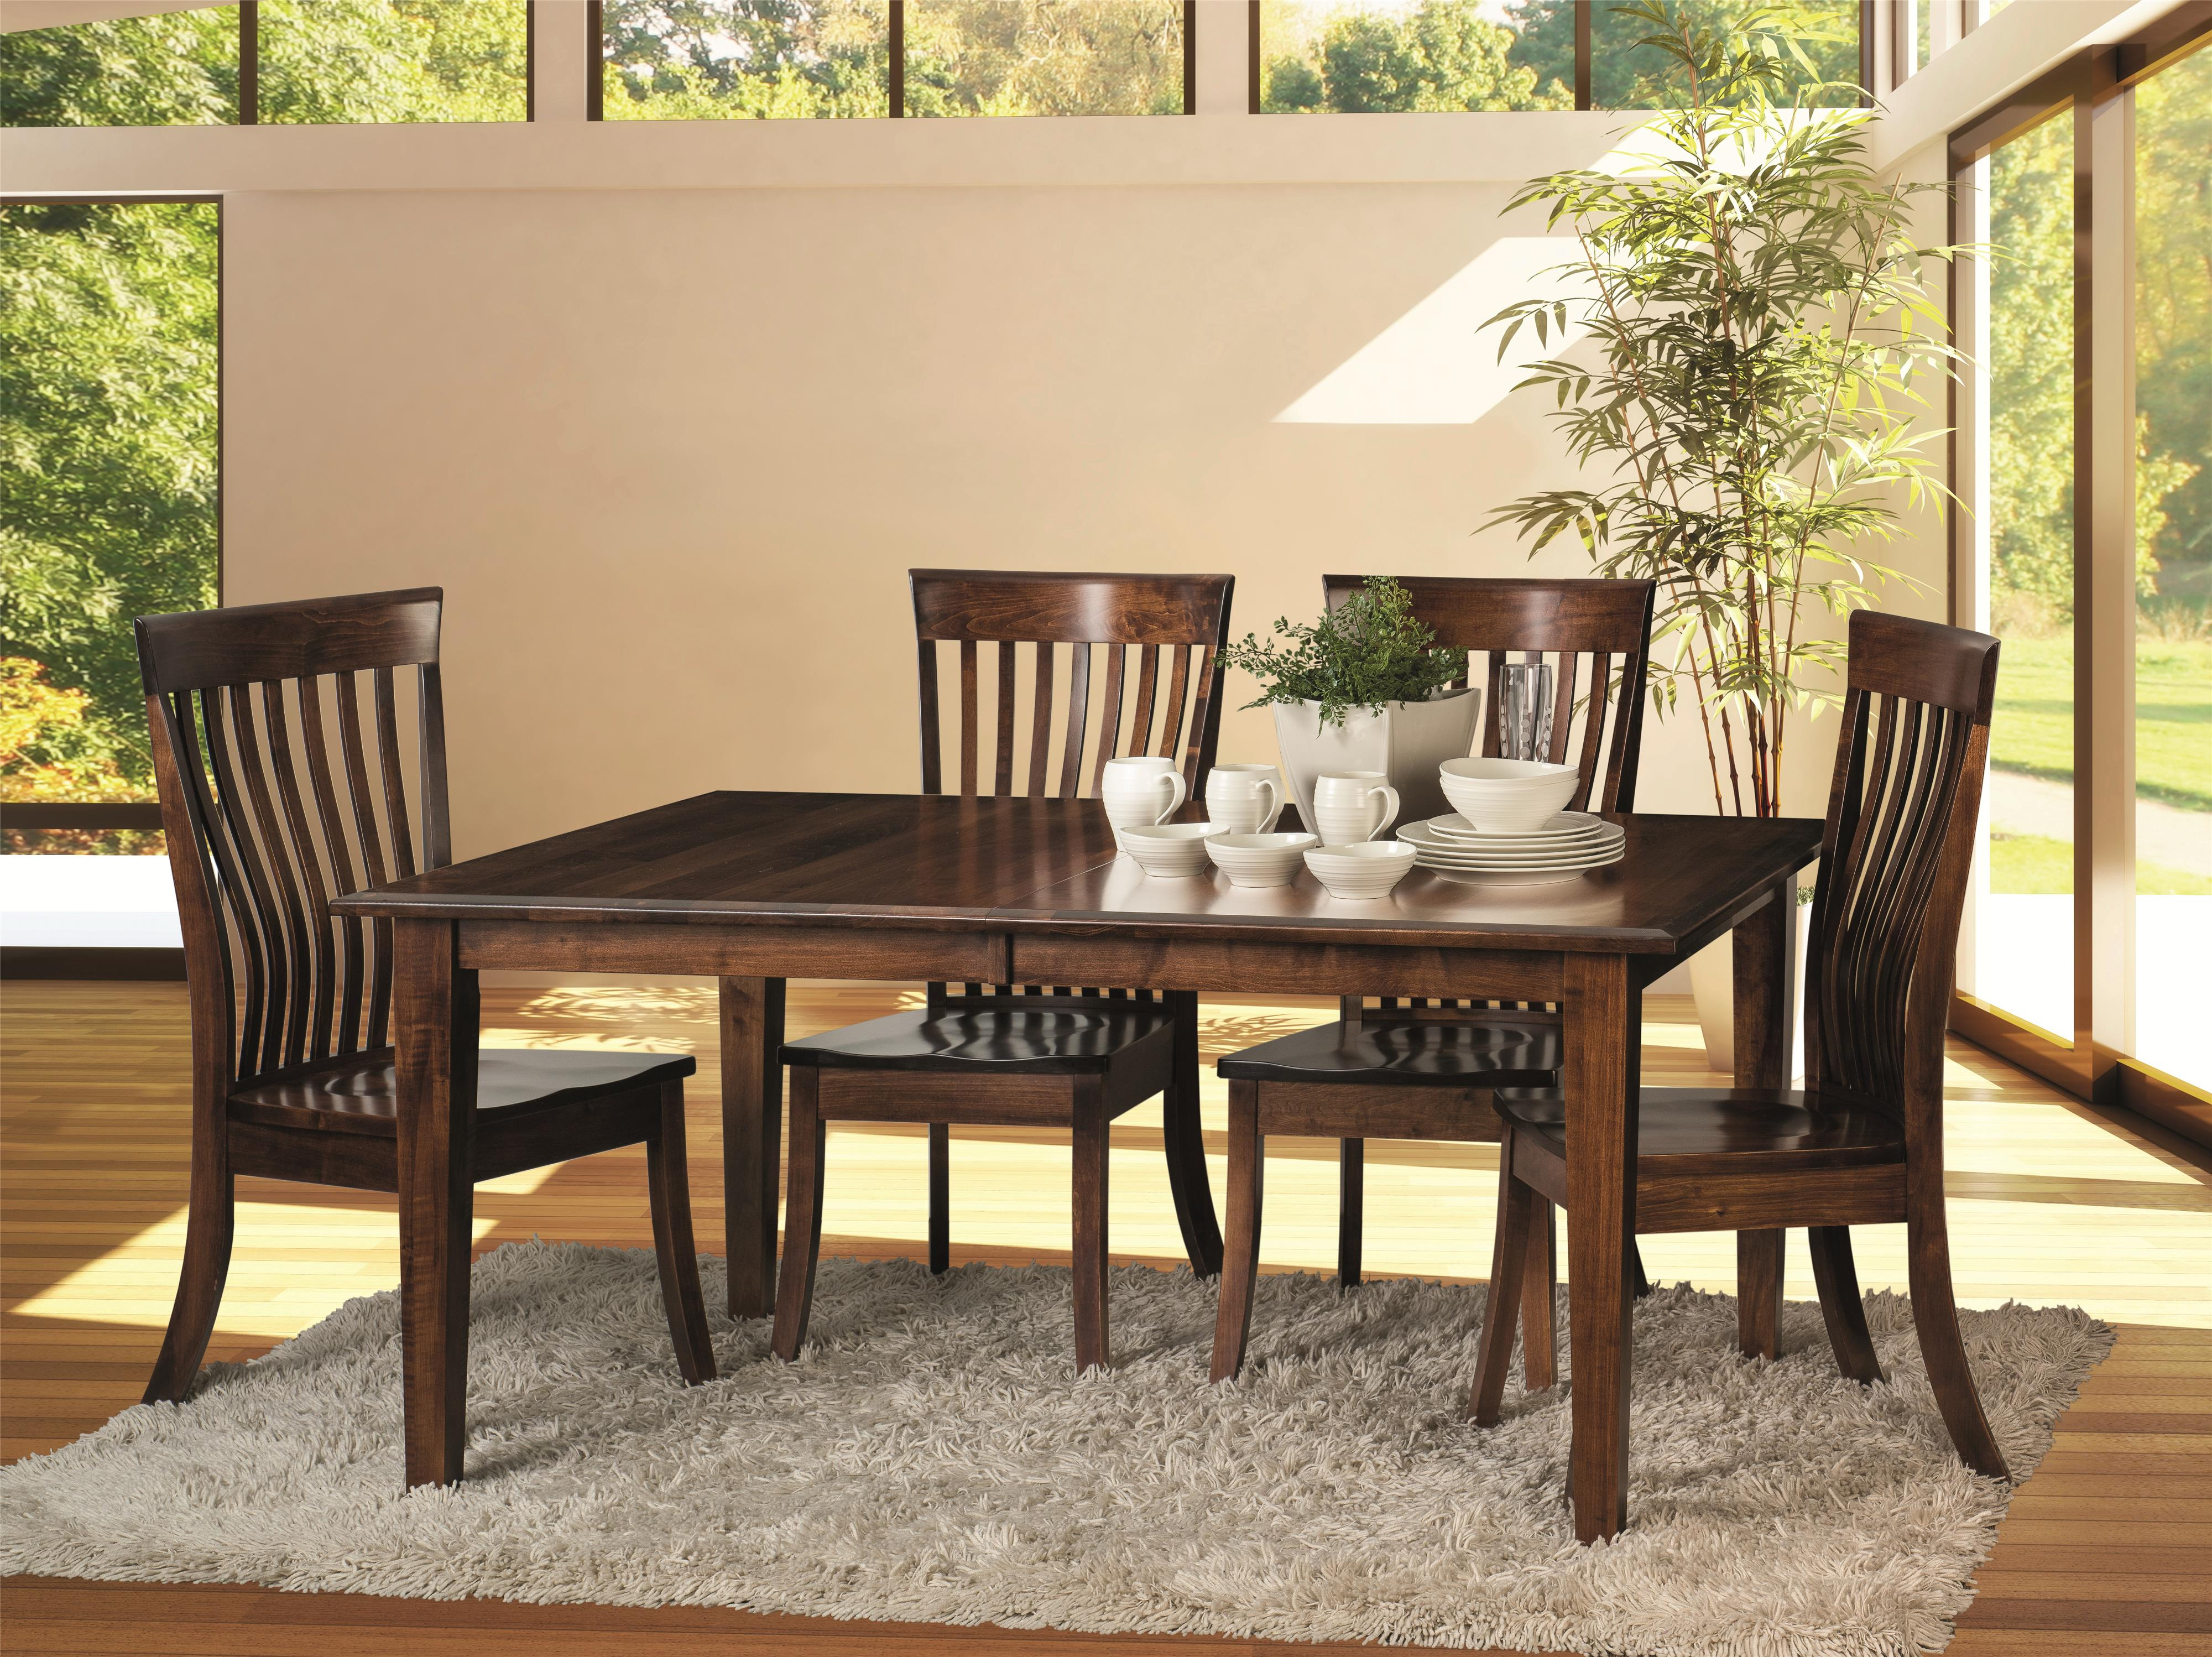 Morris Home Furnishings Crescent-1 Crescent 5 Piece Dining Room Set - Item Number: CCTB4266-KCSCW-03-30